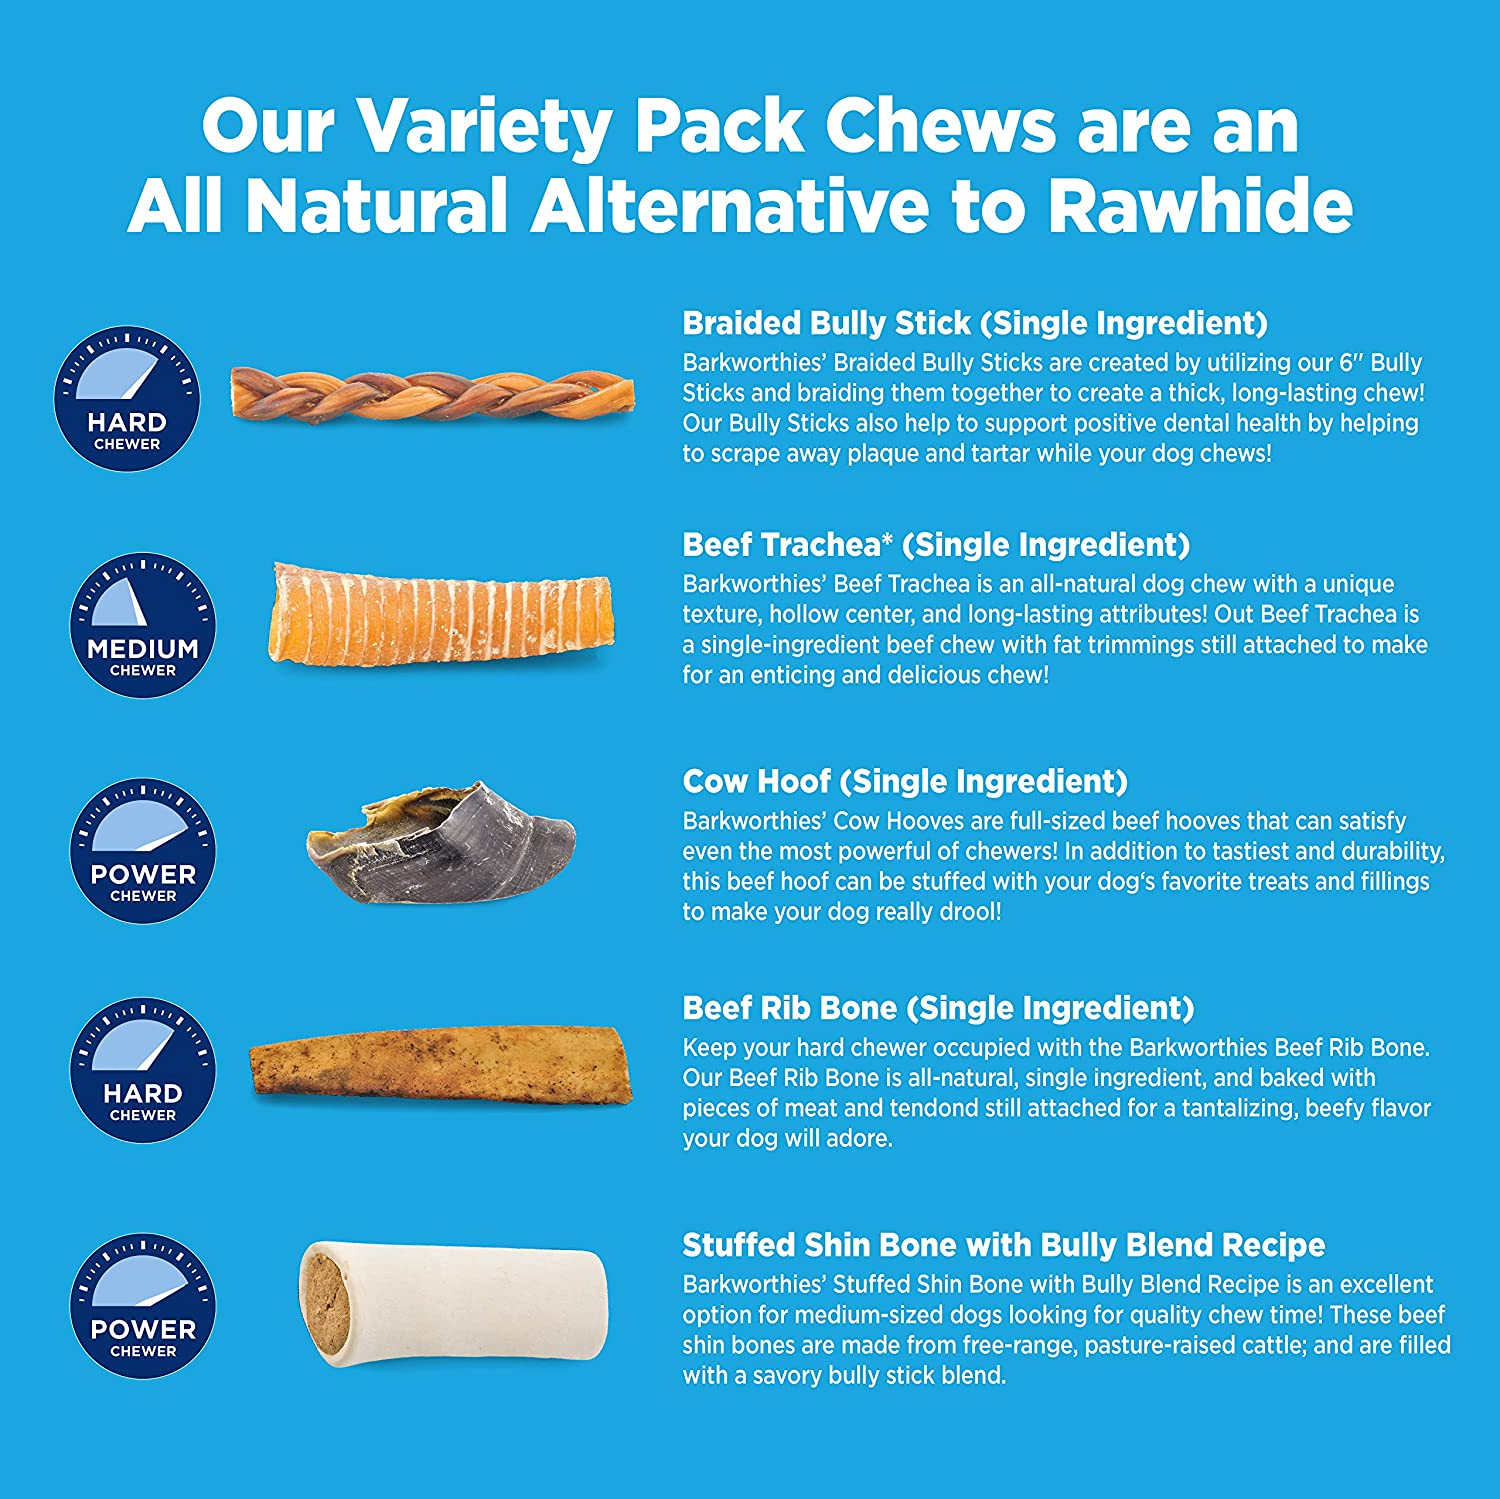 Amazon.com : Barkworthies Healthy Dog Treats & Chews Medium Dog Variety Pack (5 Chews) - Protein-Rich, All-Natural, Highly Digestible, Rawhide Alternative ...